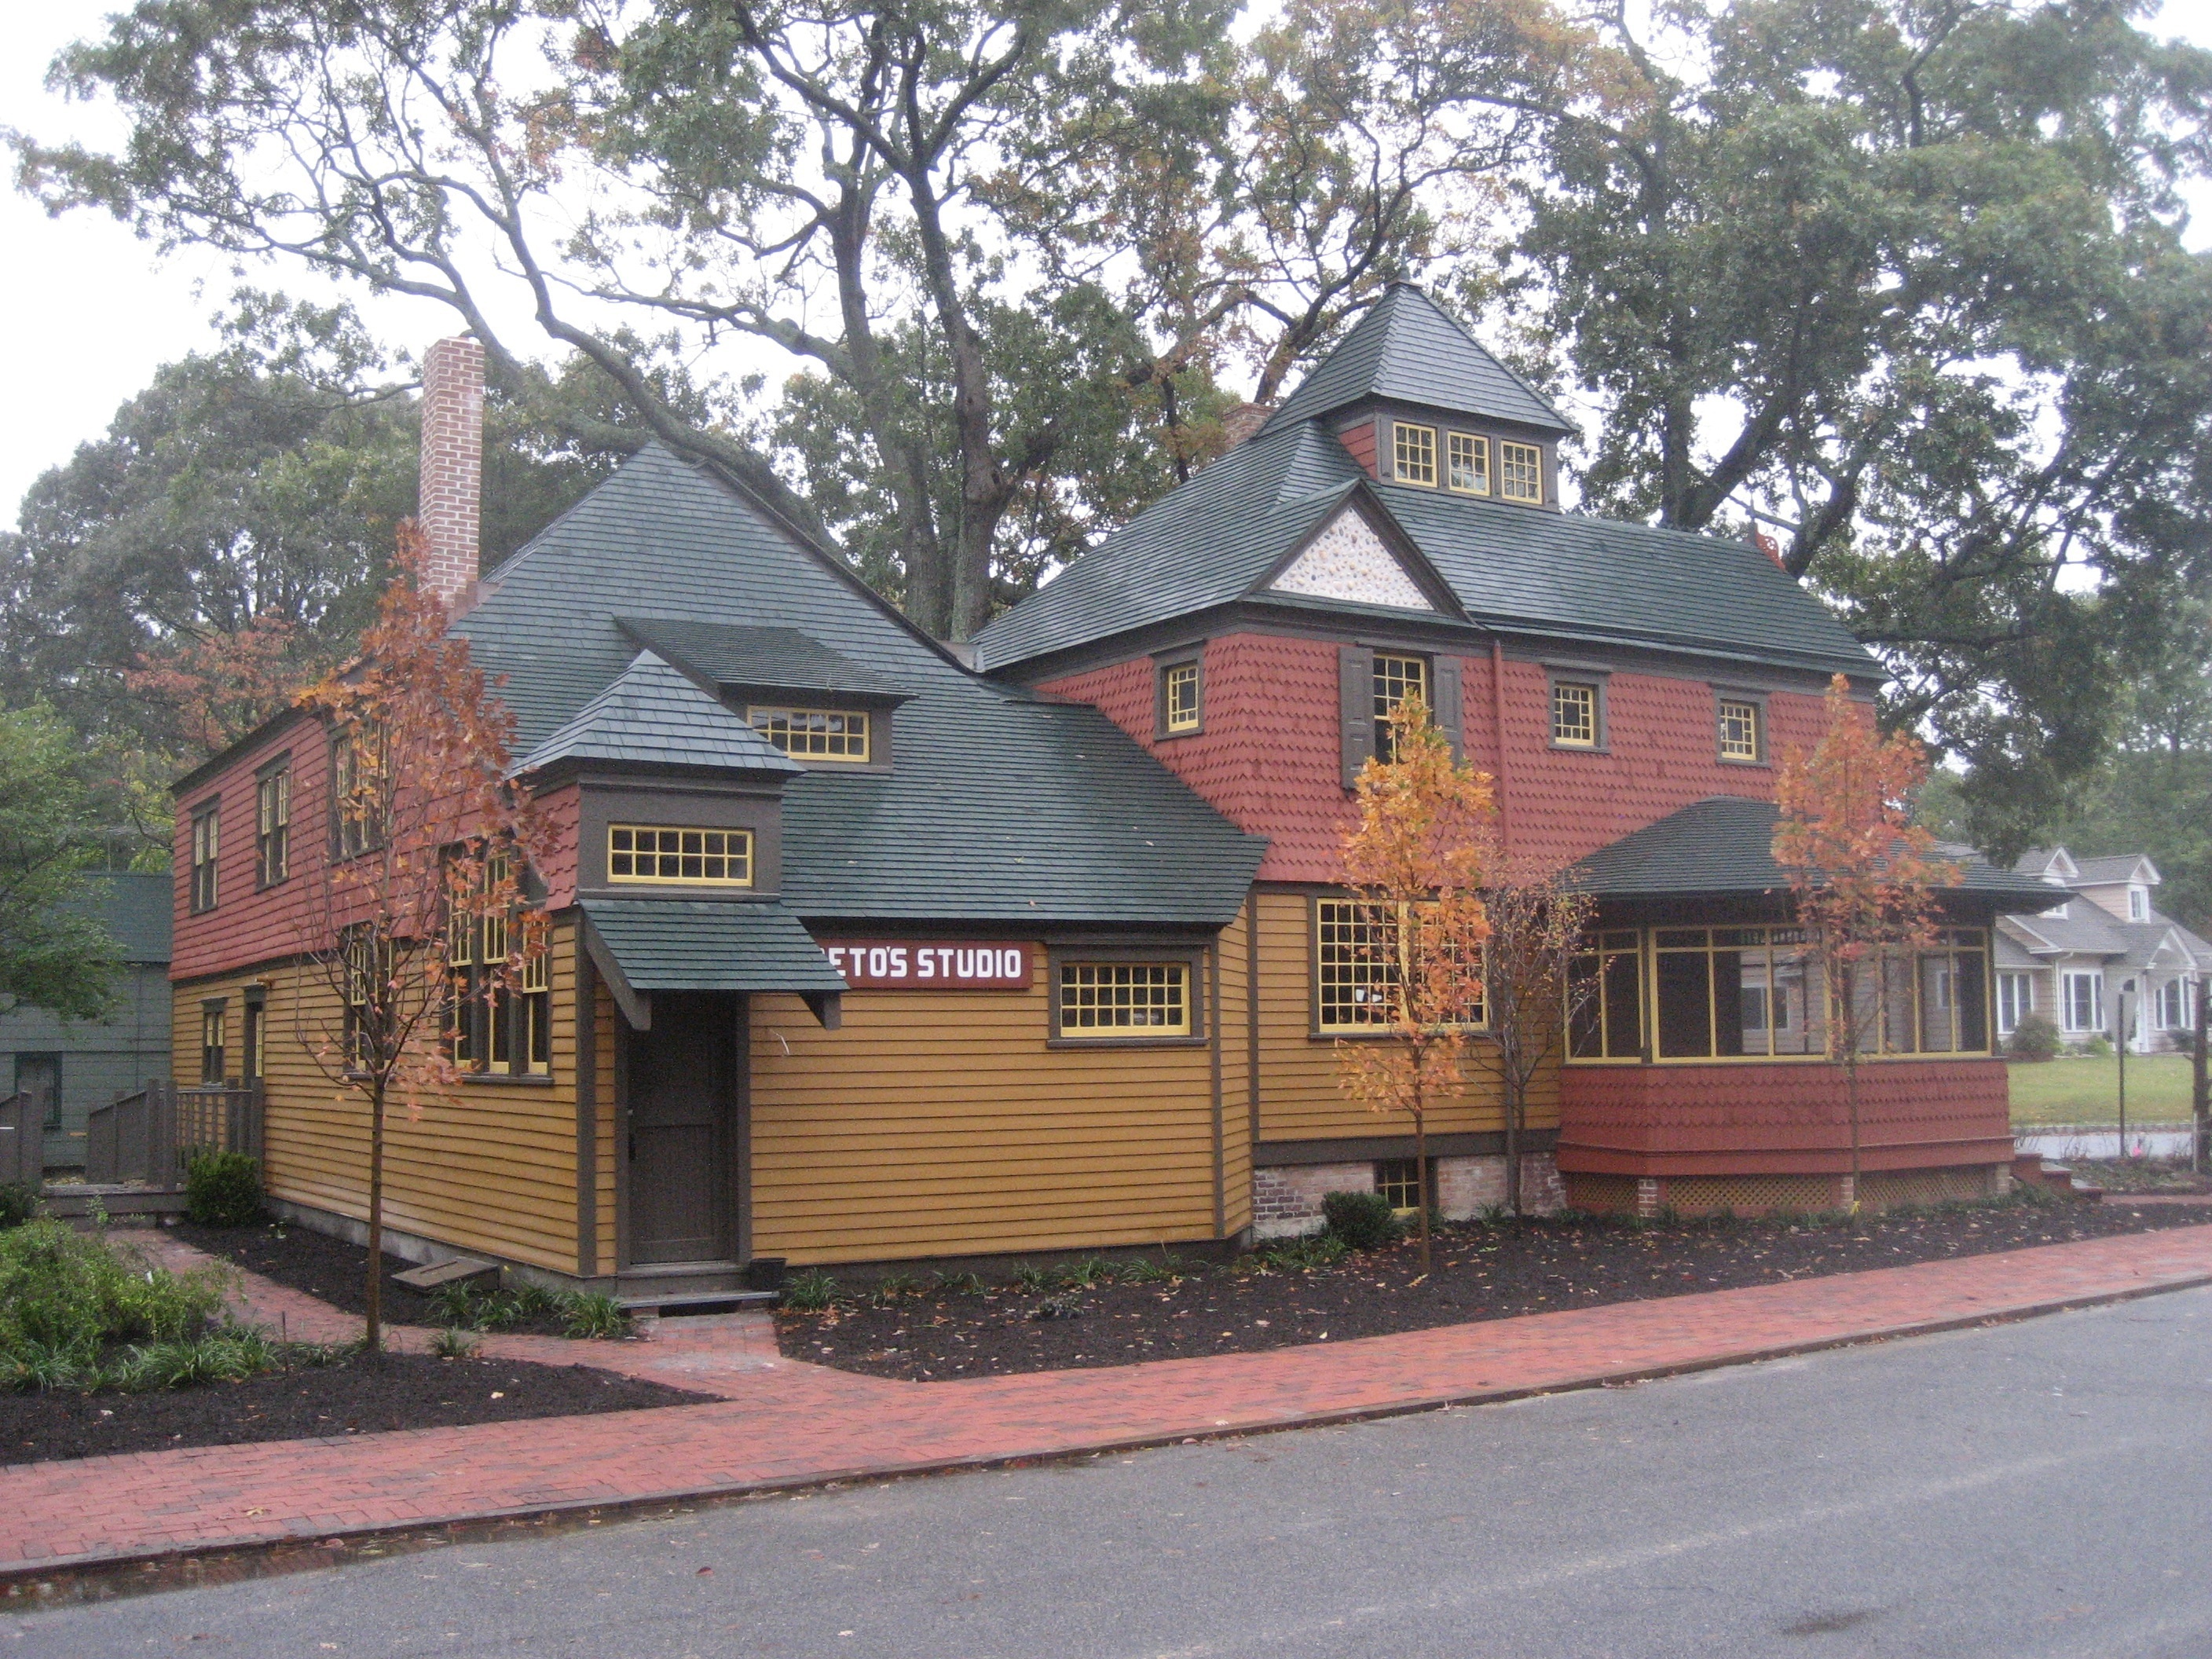 The John F. Peto Studio Museum, Image courtesy of the Ocean County Cultural & Heritage Commission Archives.